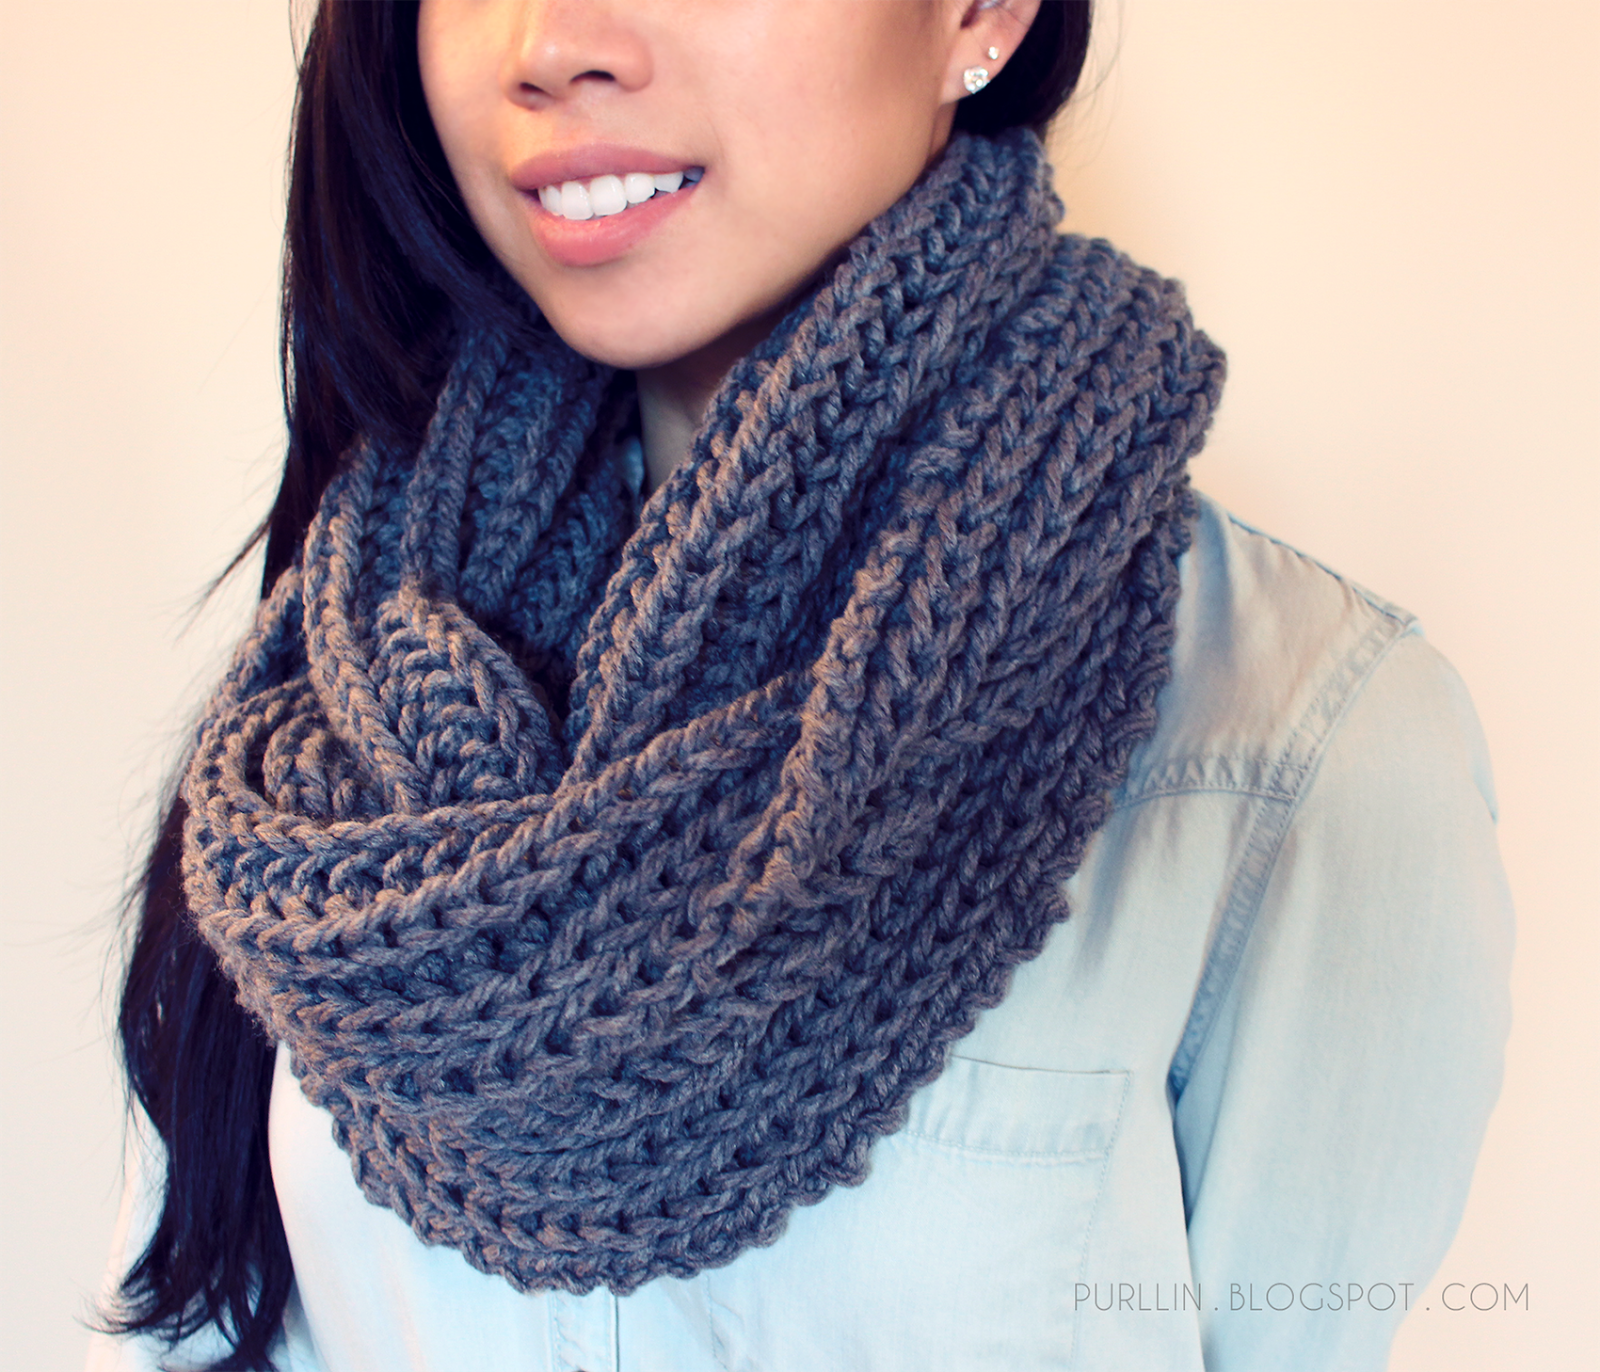 Free Knitting Pattern For Tube Scarf : Purllin: Textured November Infinity Scarf Free Pattern